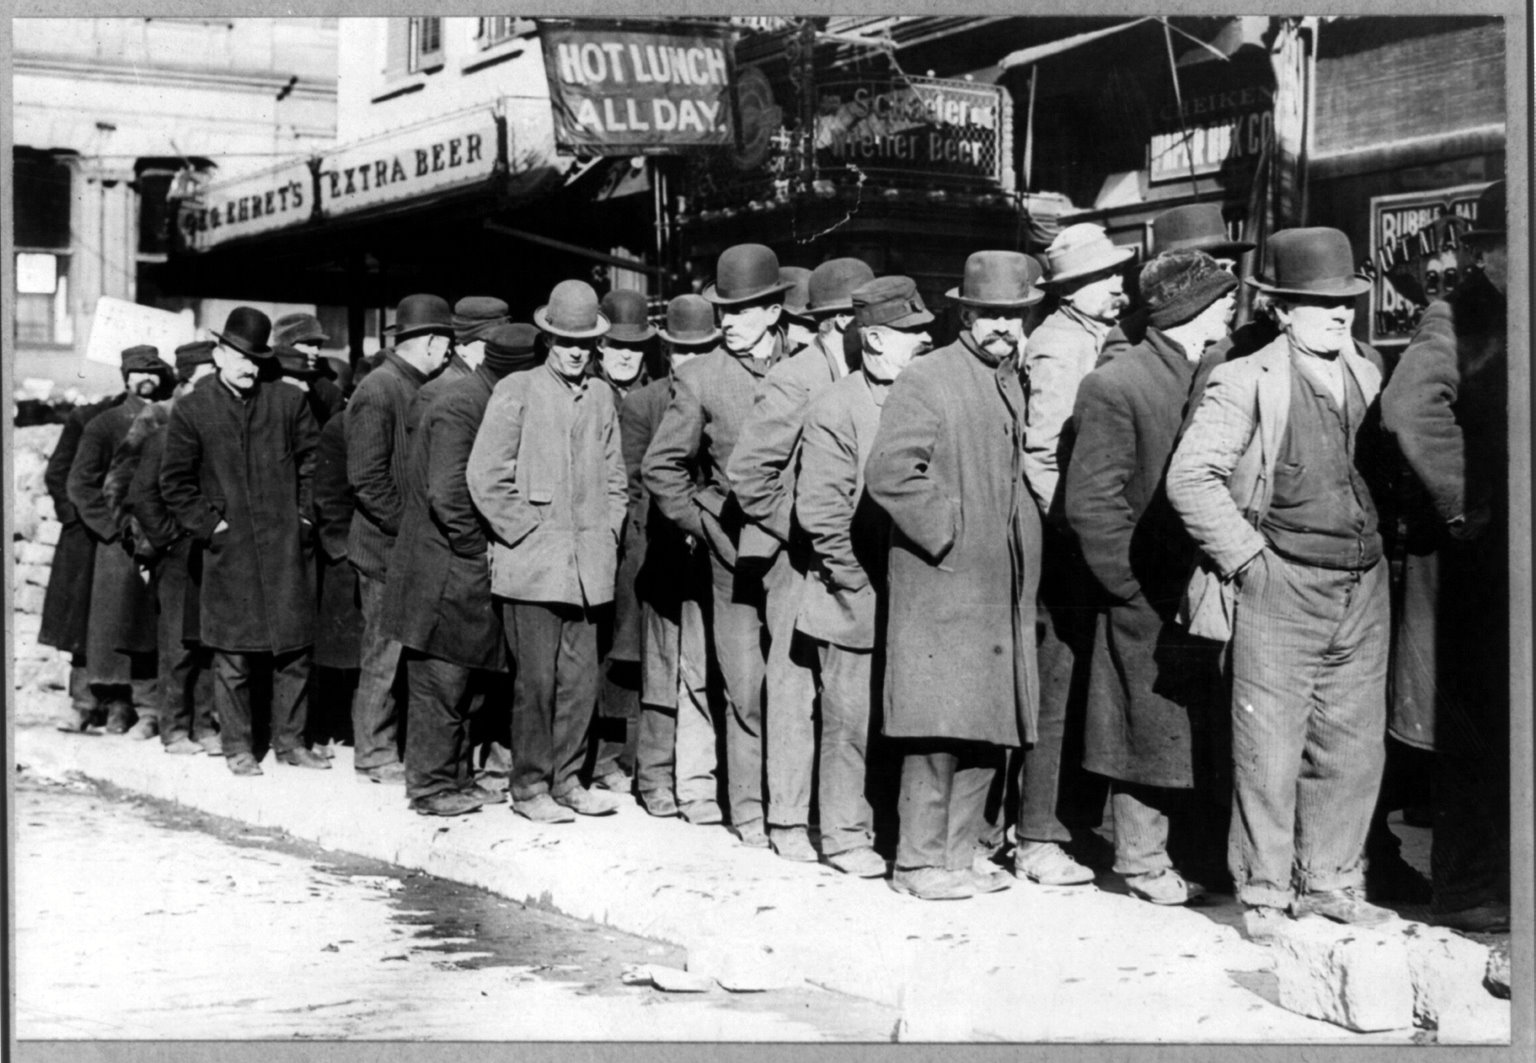 Line for soup kitchen during the Great Depression